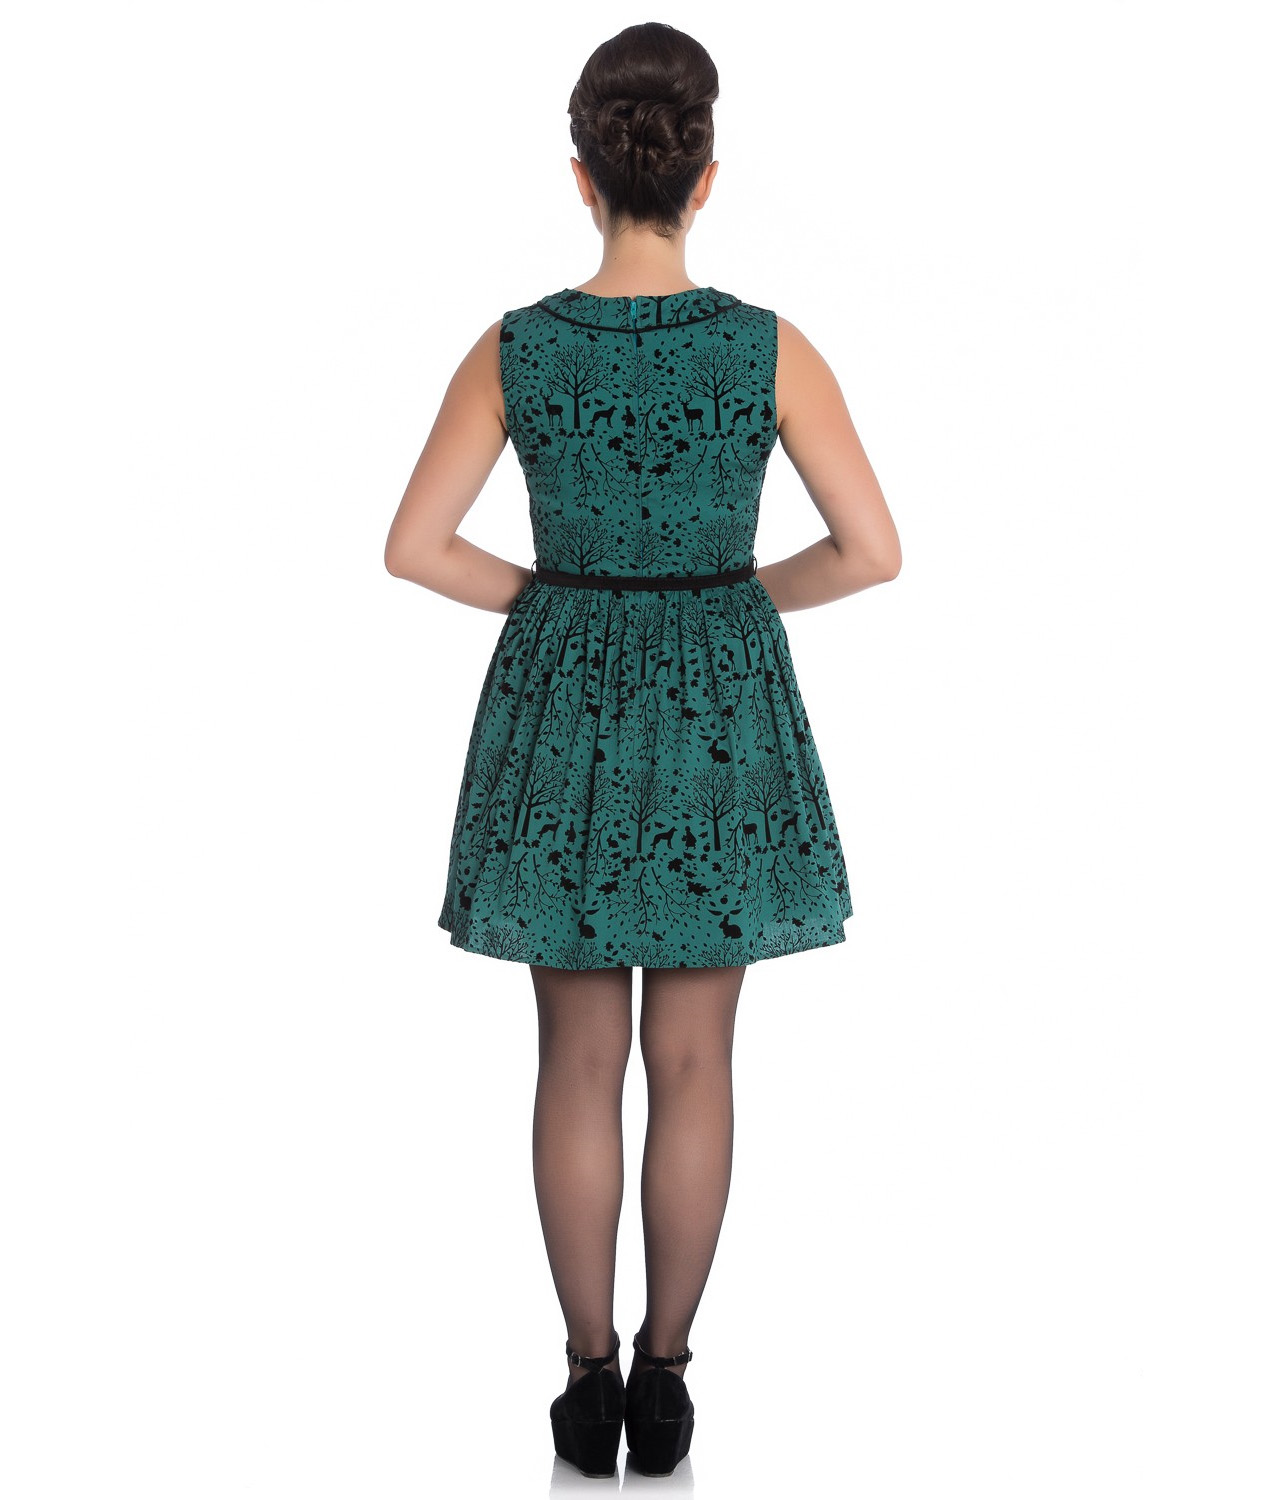 Hell-Bunny-50s-Mini-Skater-Dress-Woodland-Trees-SHERWOOD-Dark-Green-All-Sizes thumbnail 33